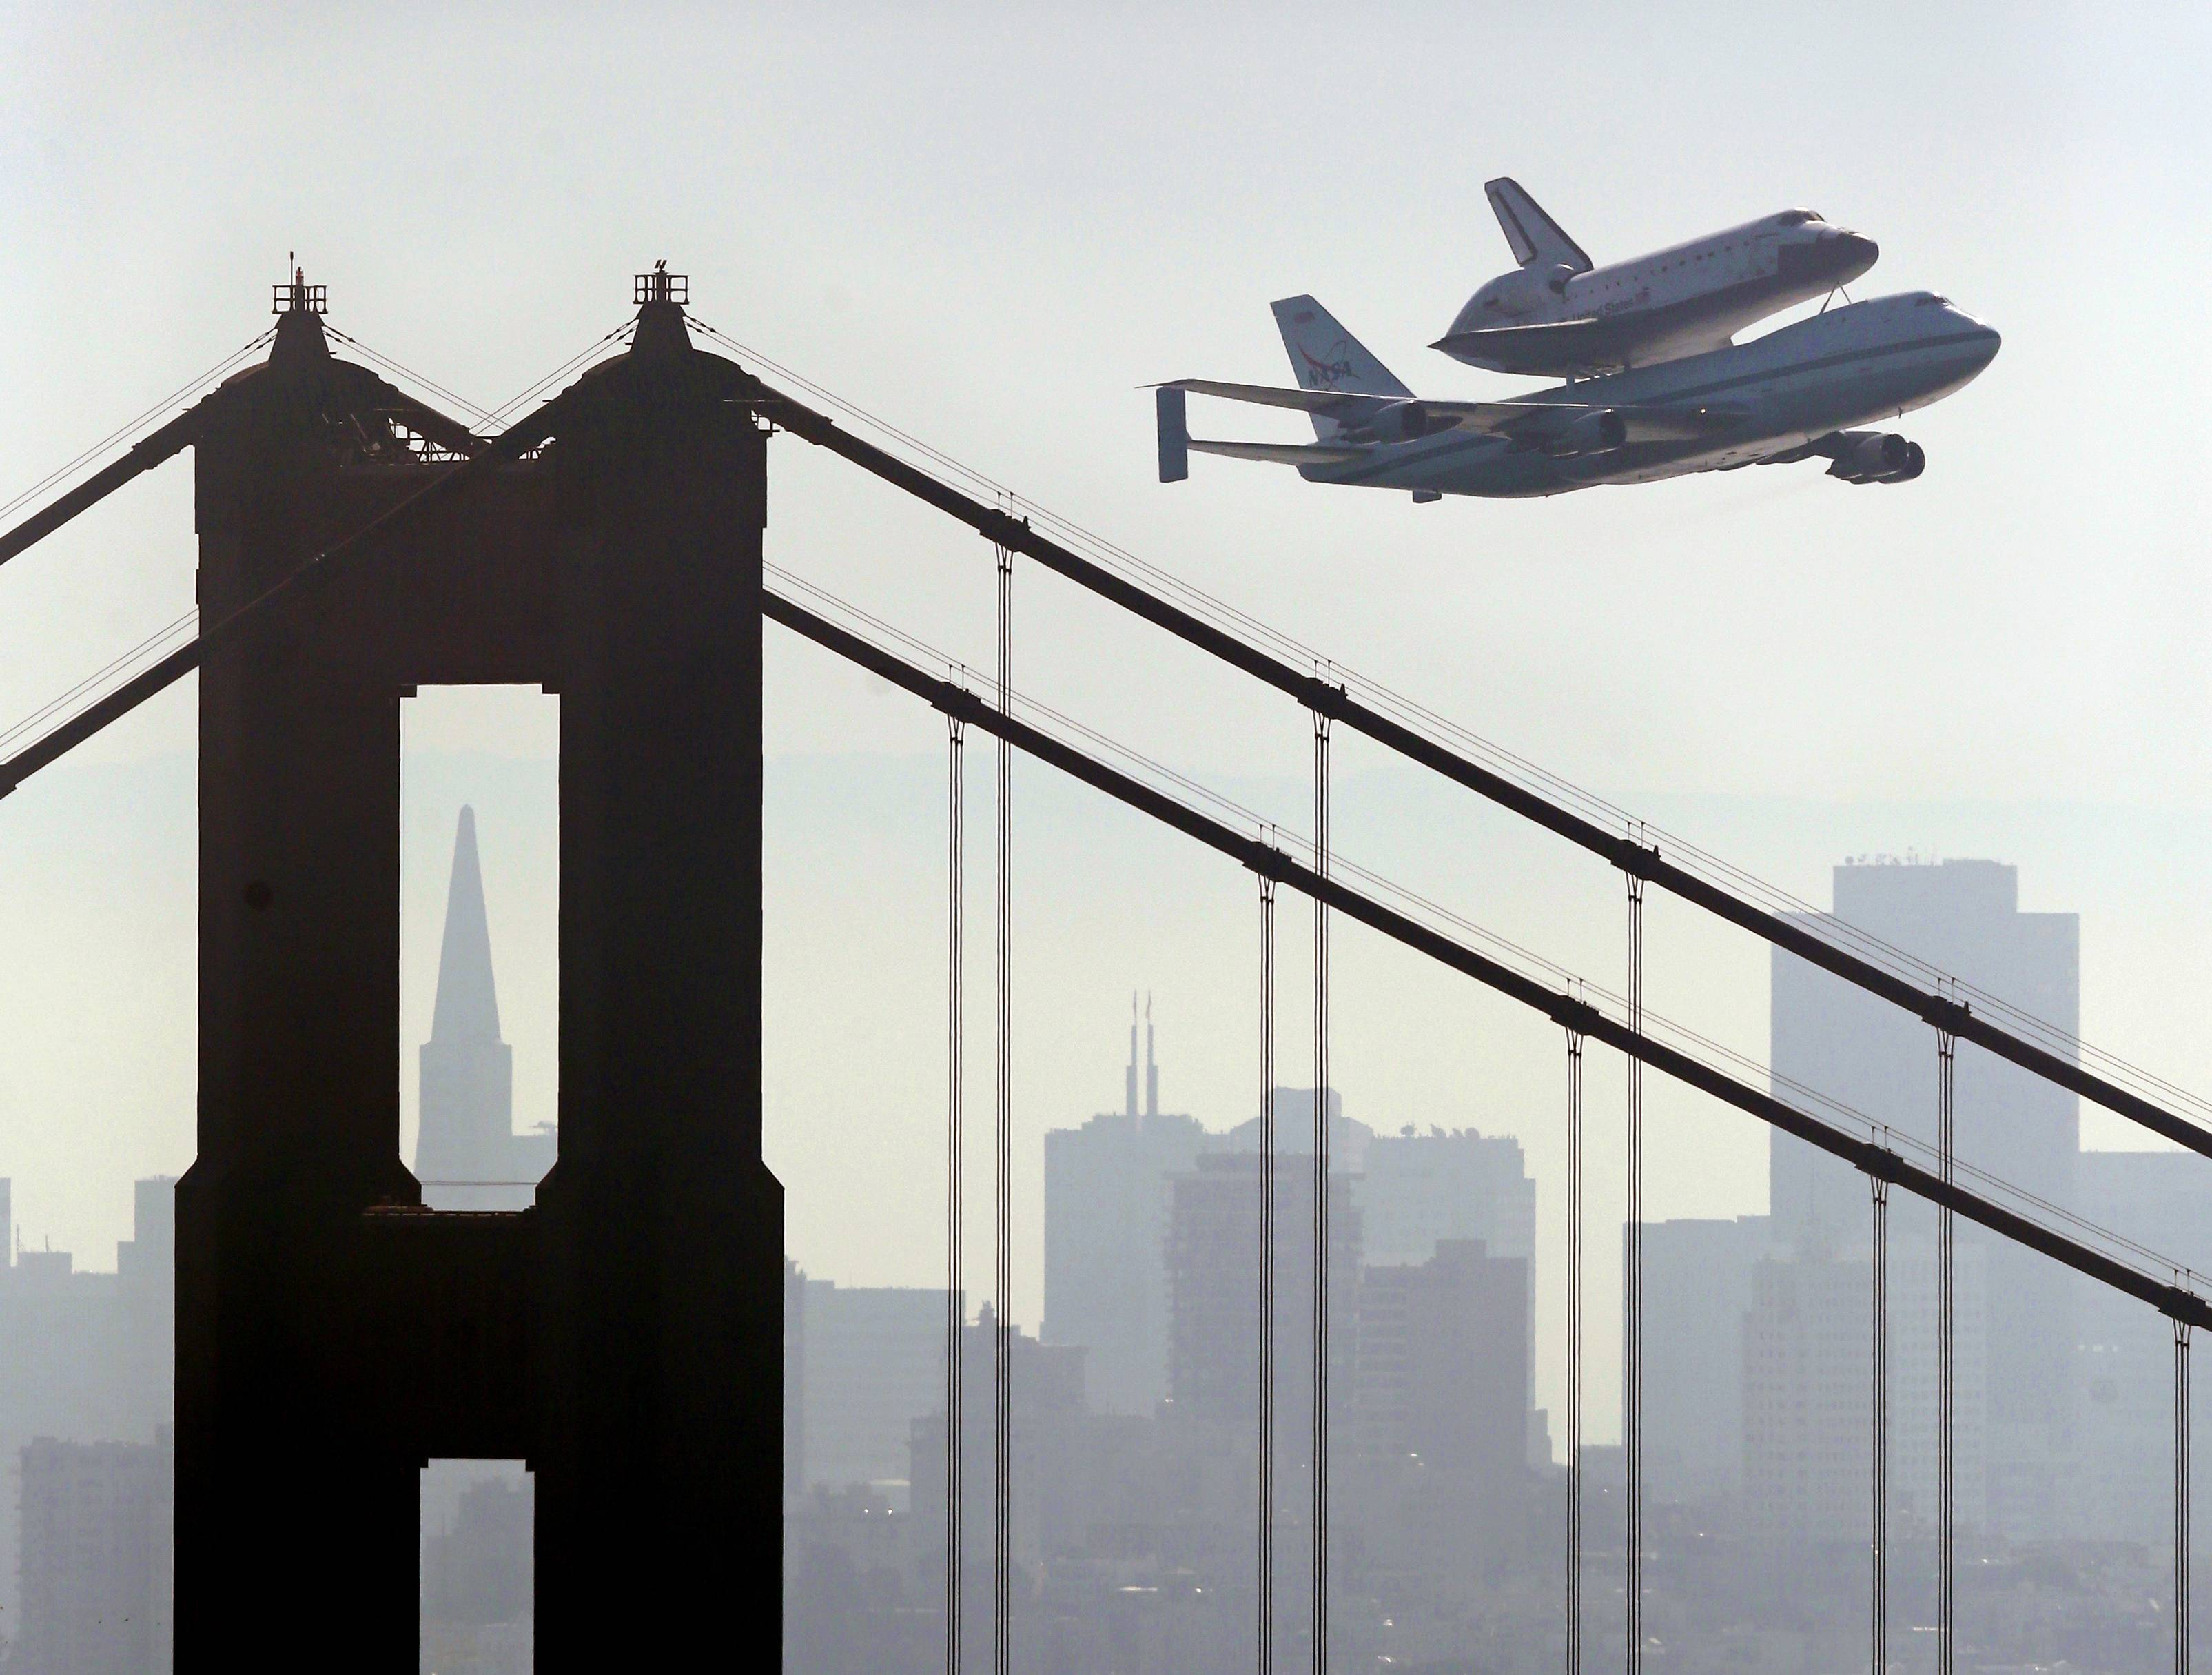 Space Shuttle Endeavour, mounted on NASA's Shuttle Carrier Aircraft, passes over the Golden Gate Bridge Friday in San Francisco. Endeavour is making a final trek across the country to the California Science Center in Los Angeles, where it will be permanently displayed.